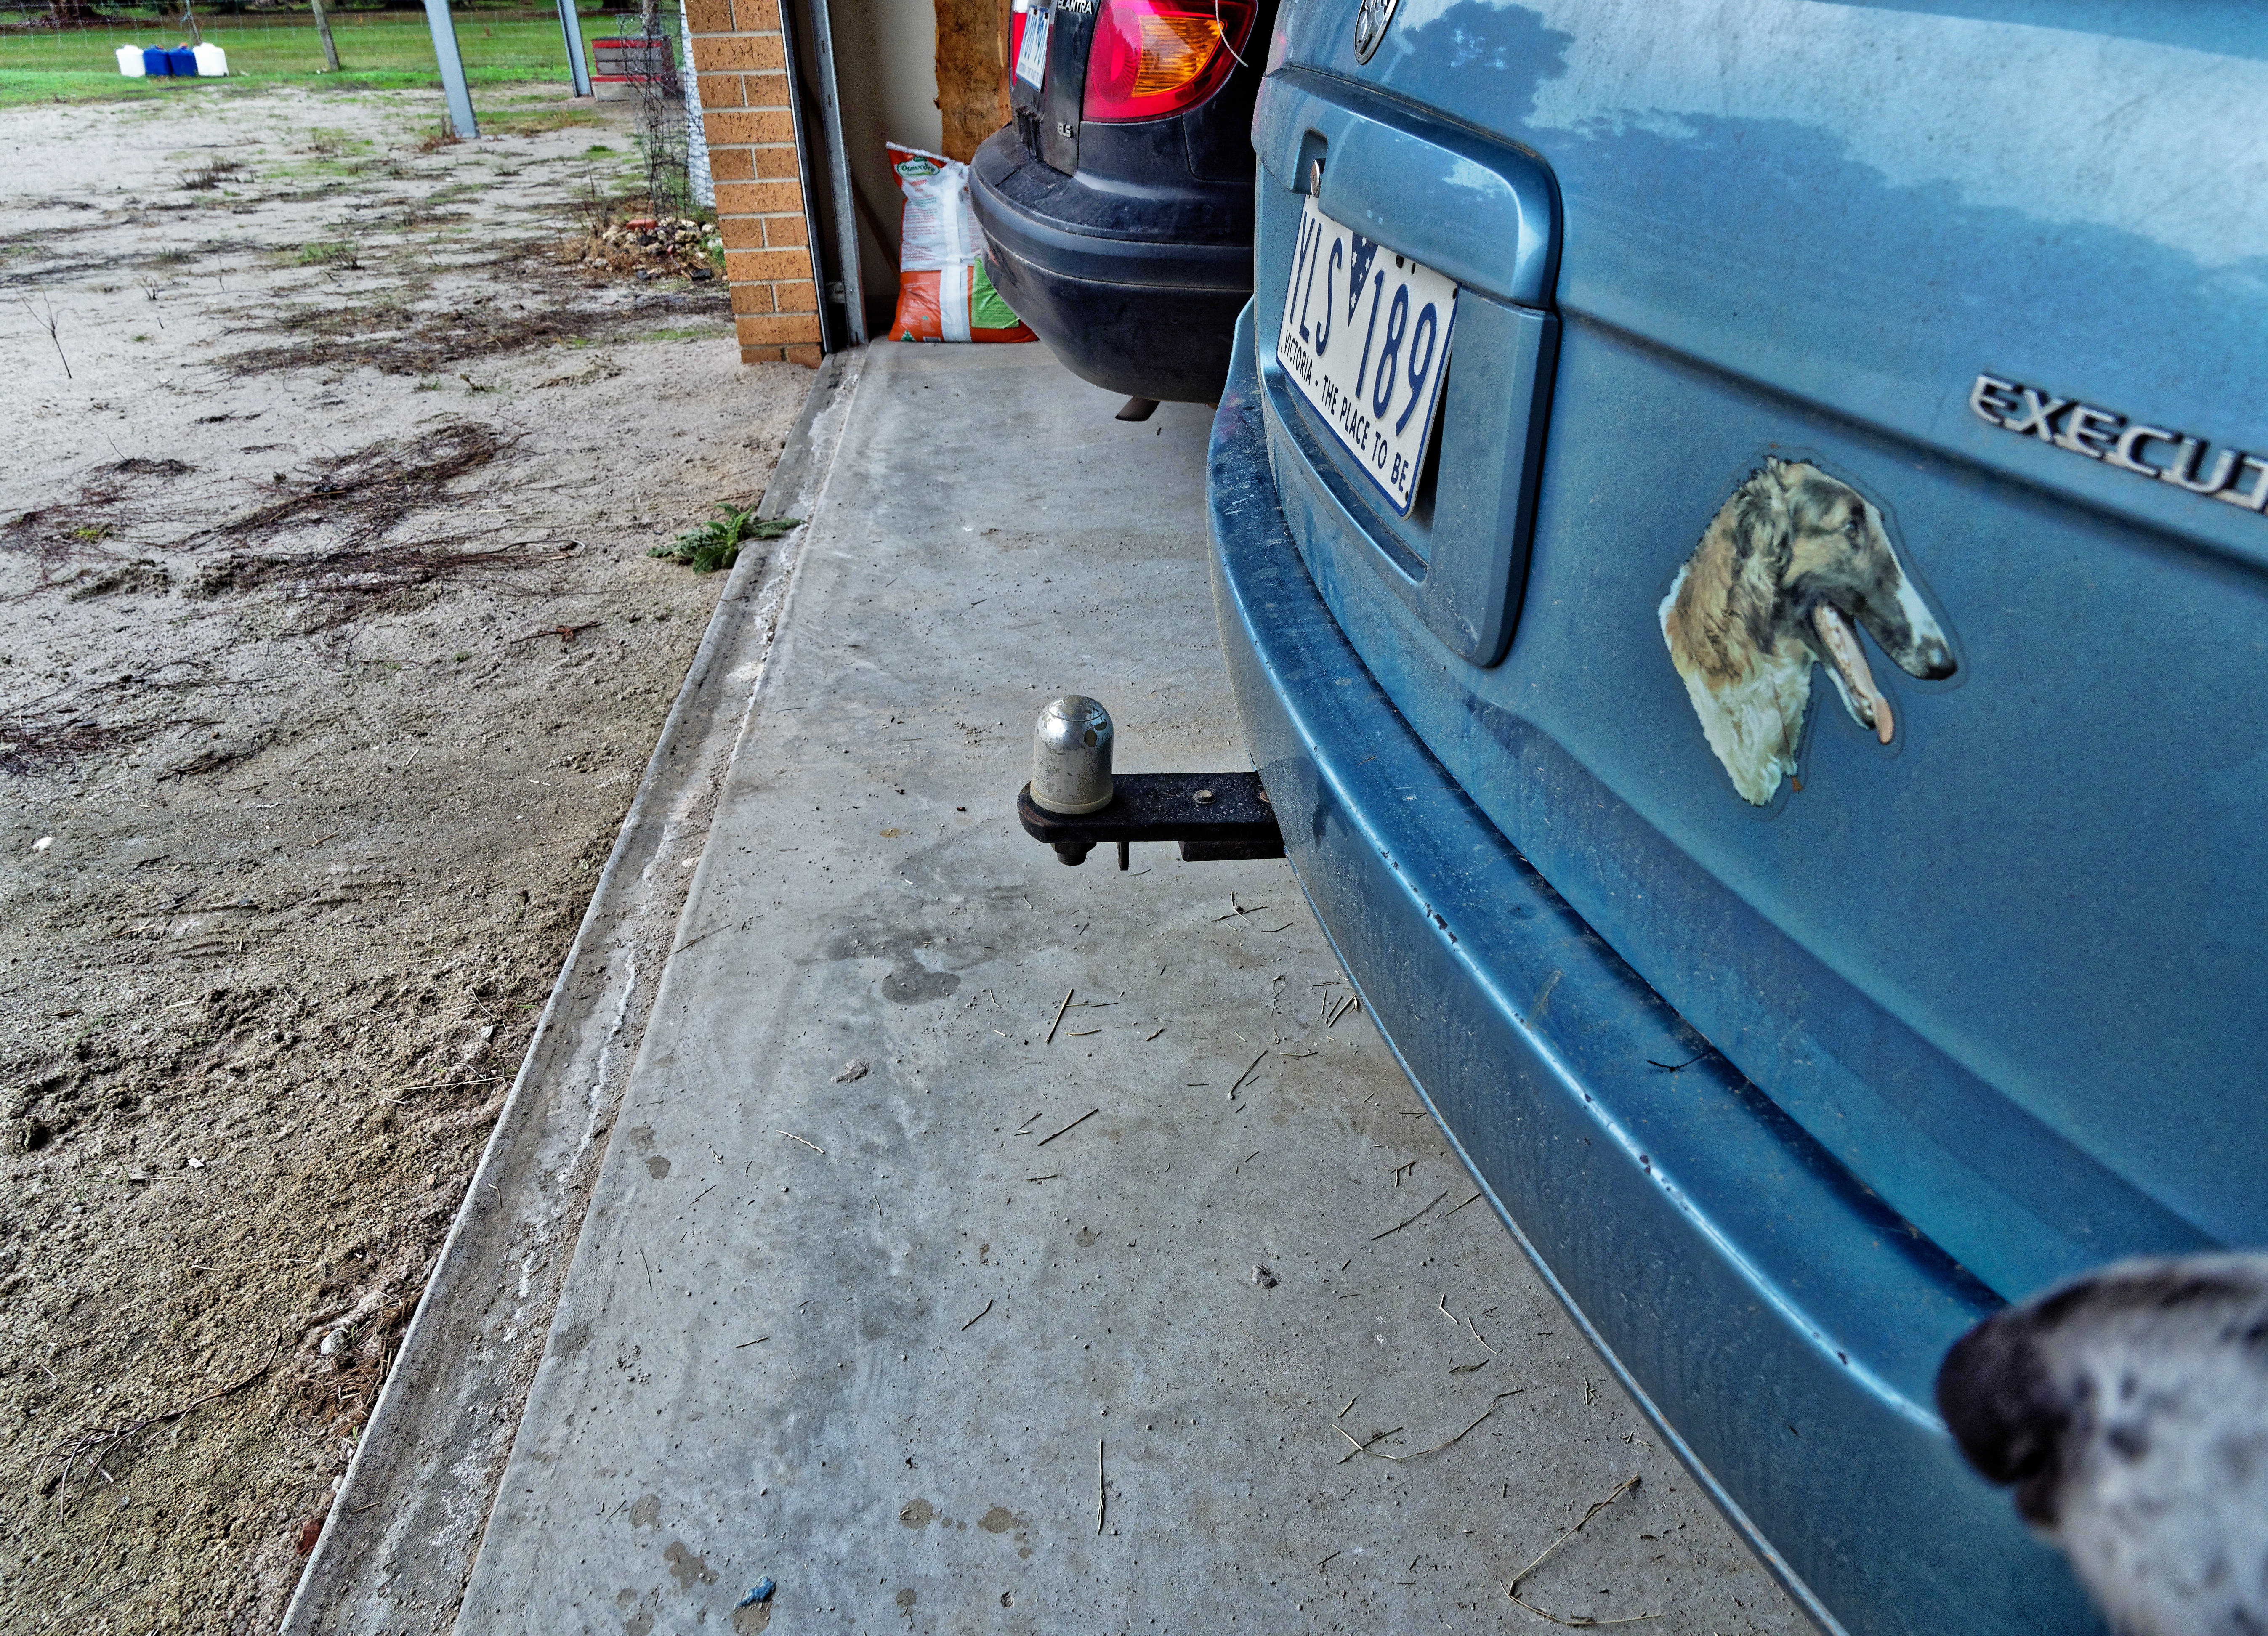 This should be Tow-bar-1.jpeg.  Is it missing?